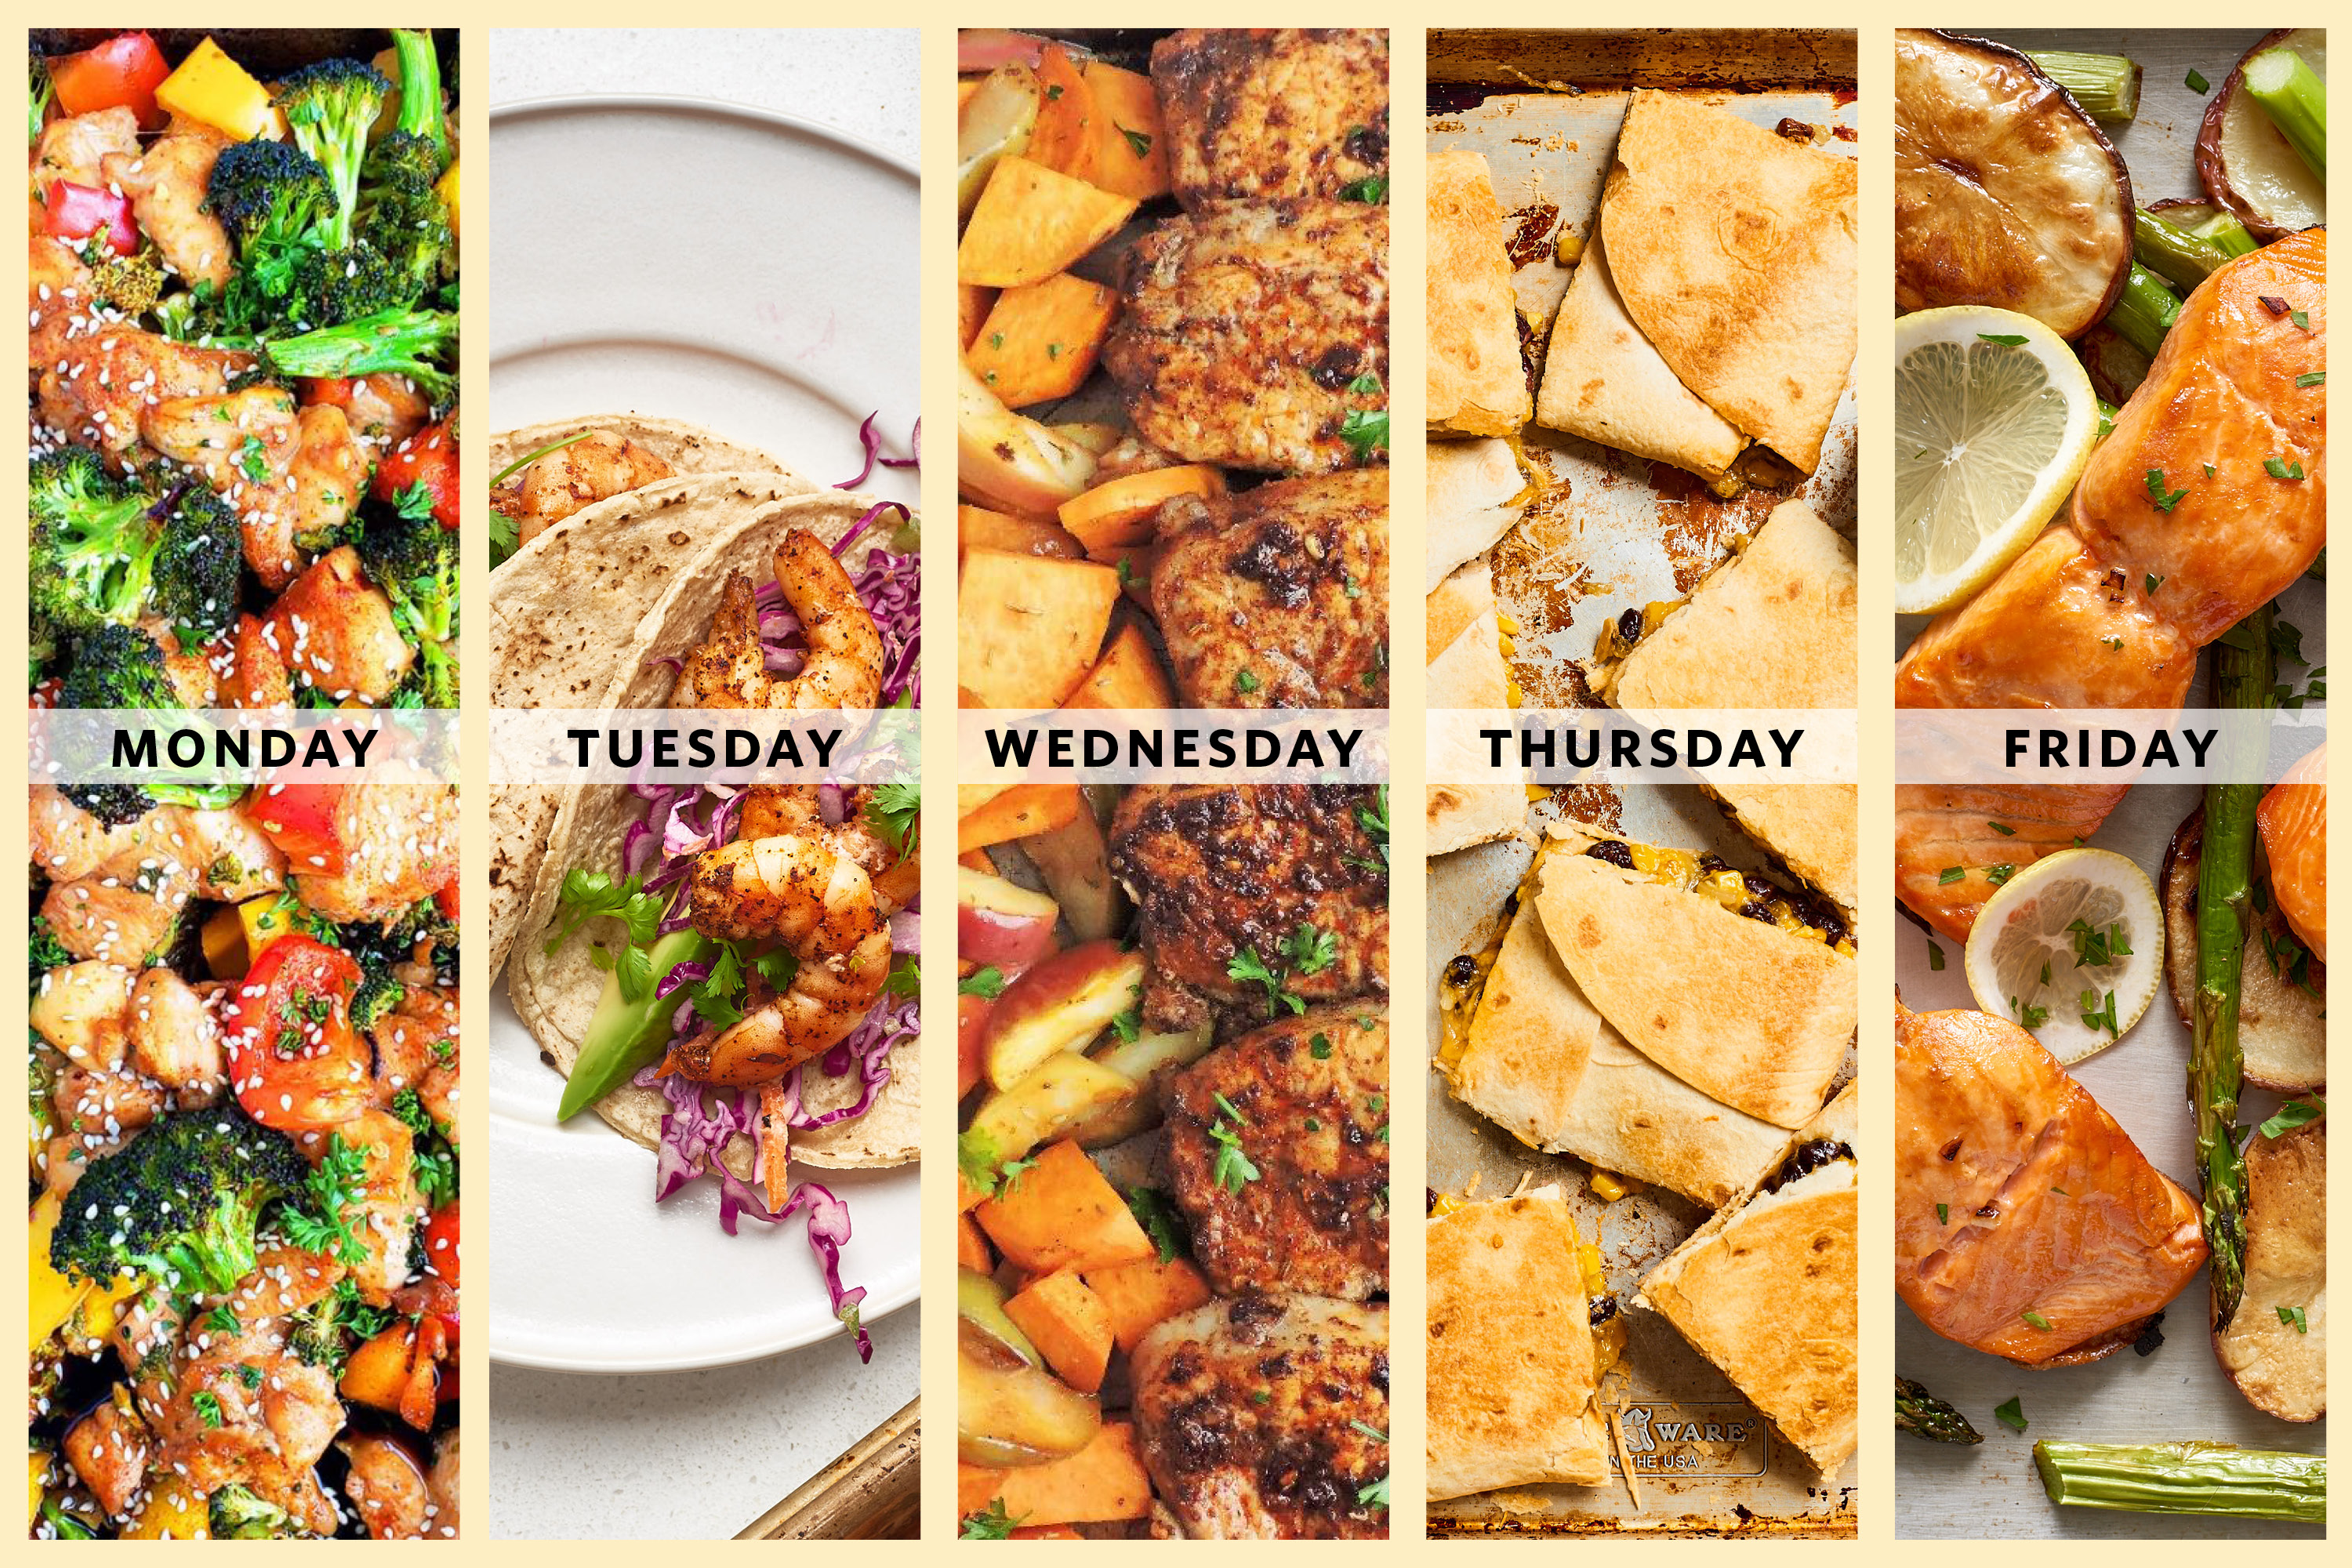 8 Weeks of Family Friendly Meal Plans to Make Right Now   Kitchn